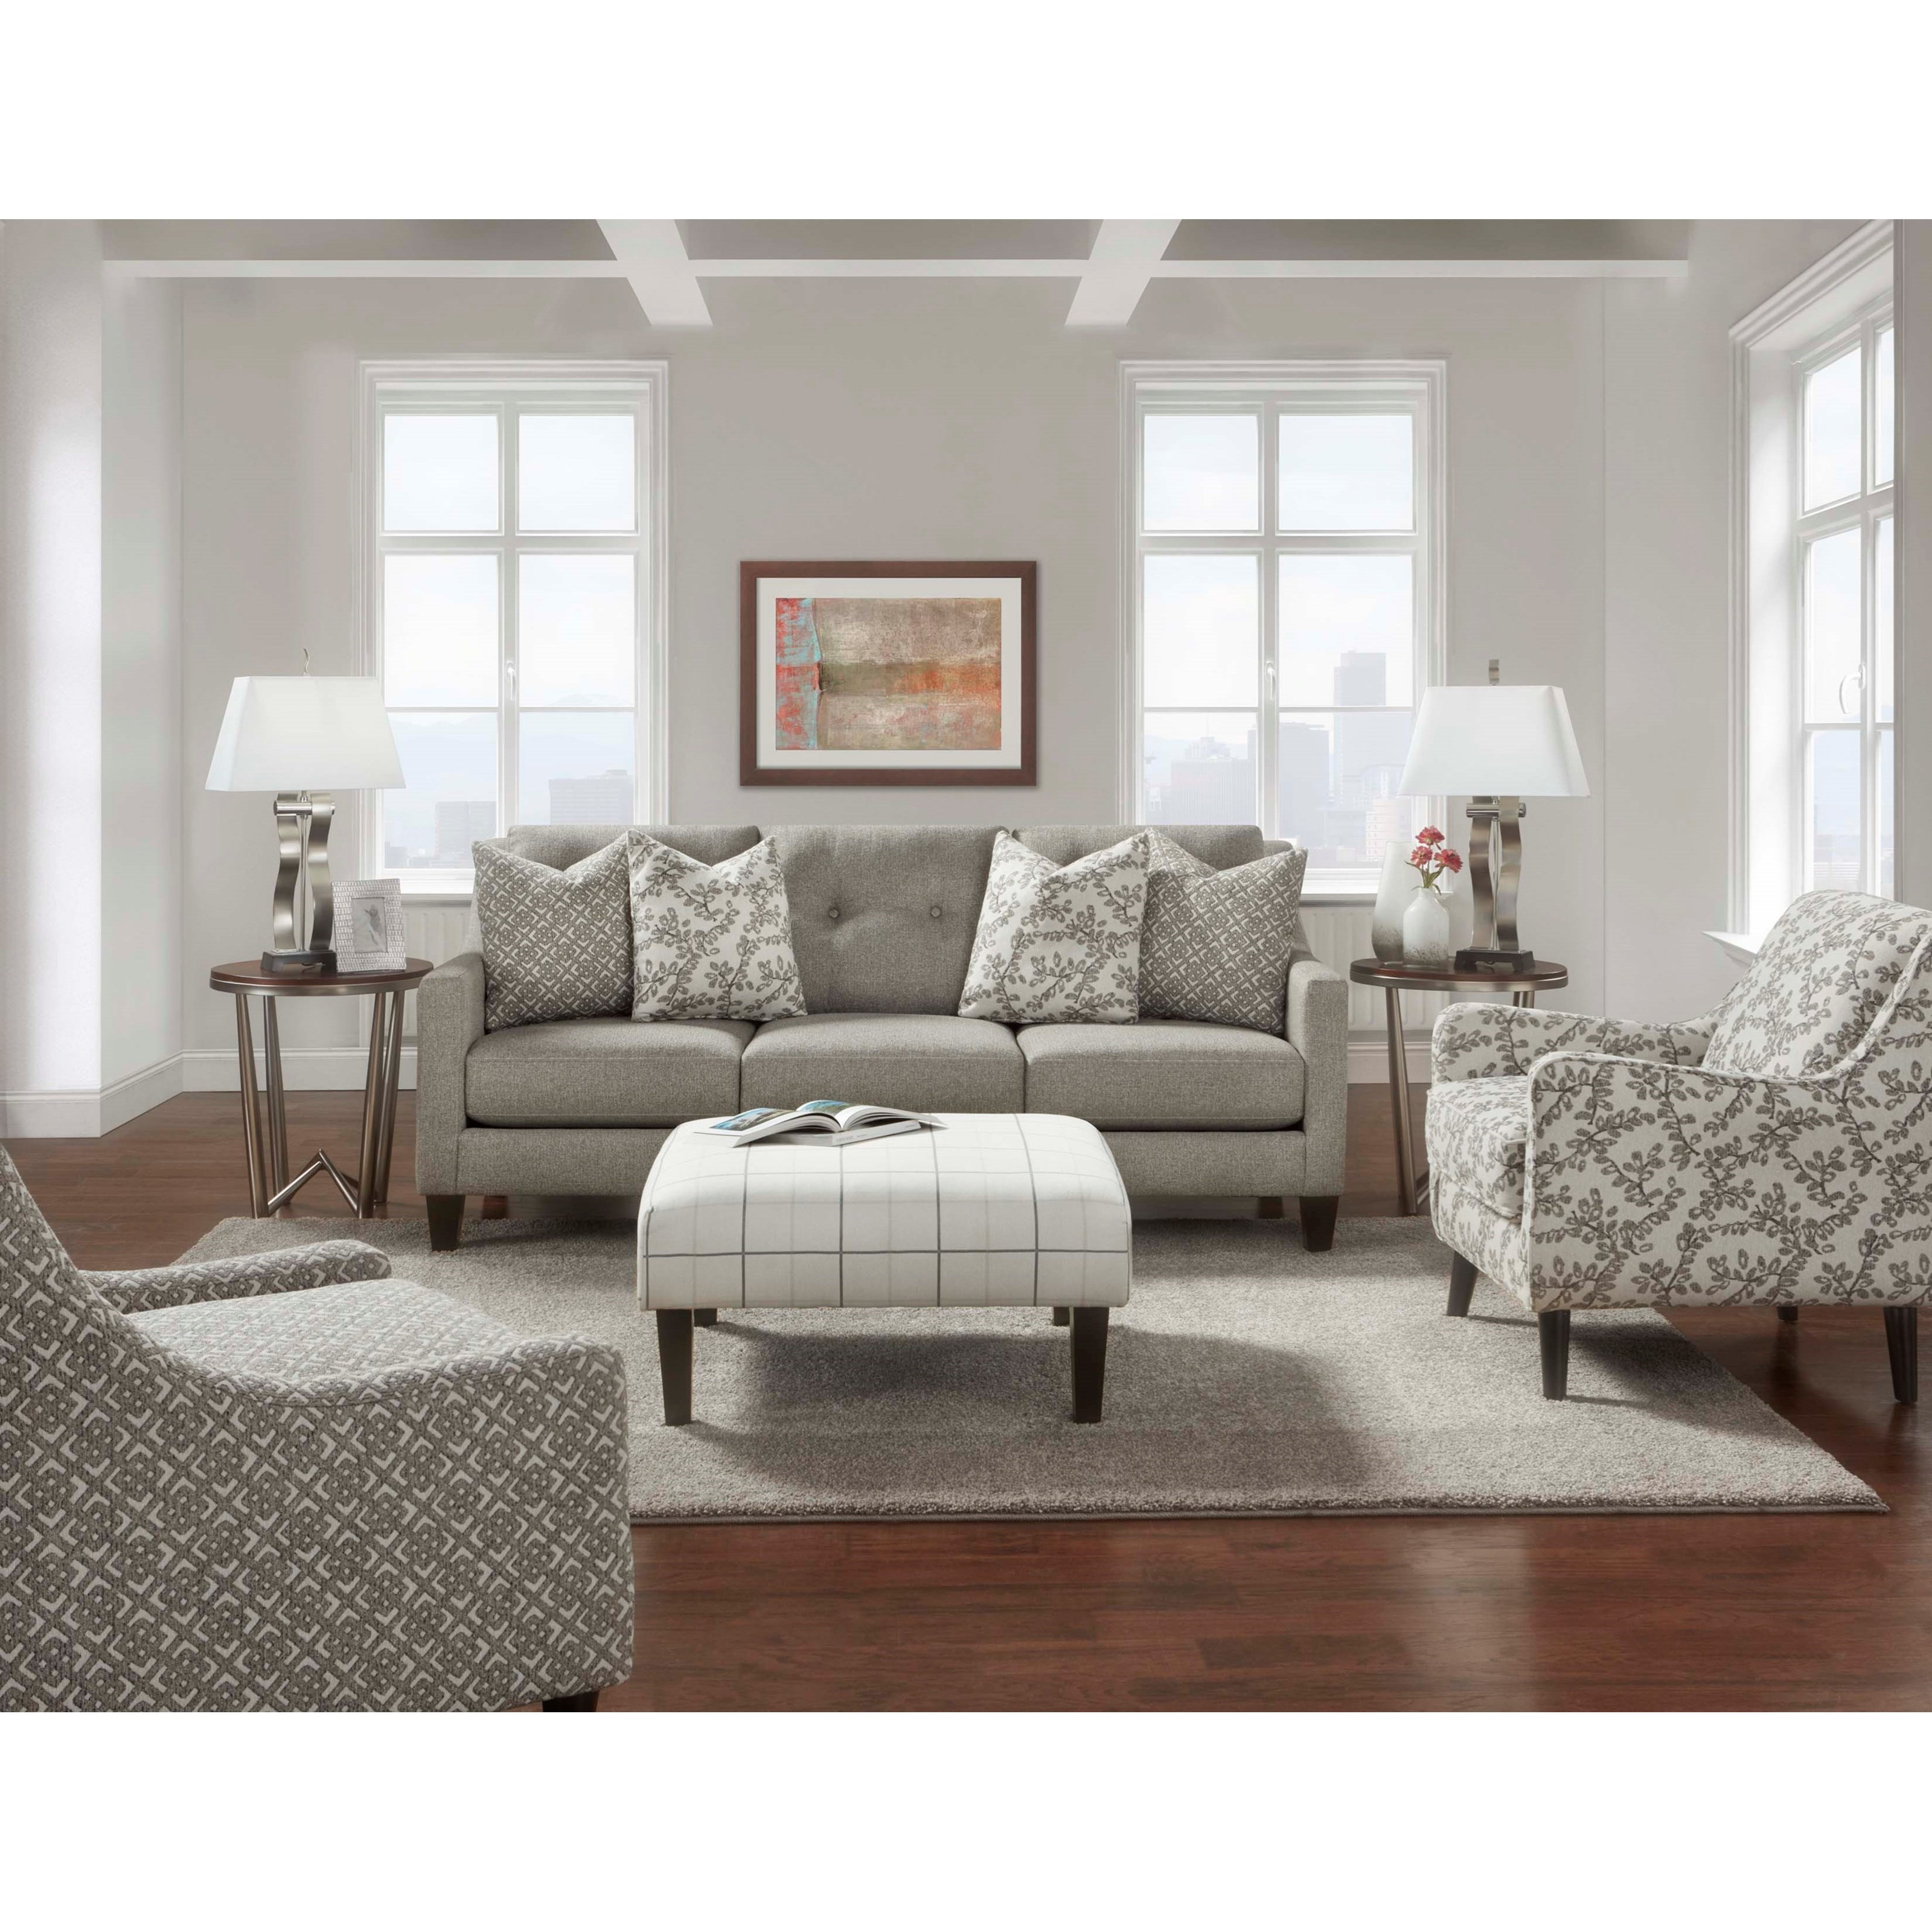 3280 Stationary Living Room Group by Fusion Furniture at Furniture Superstore - Rochester, MN